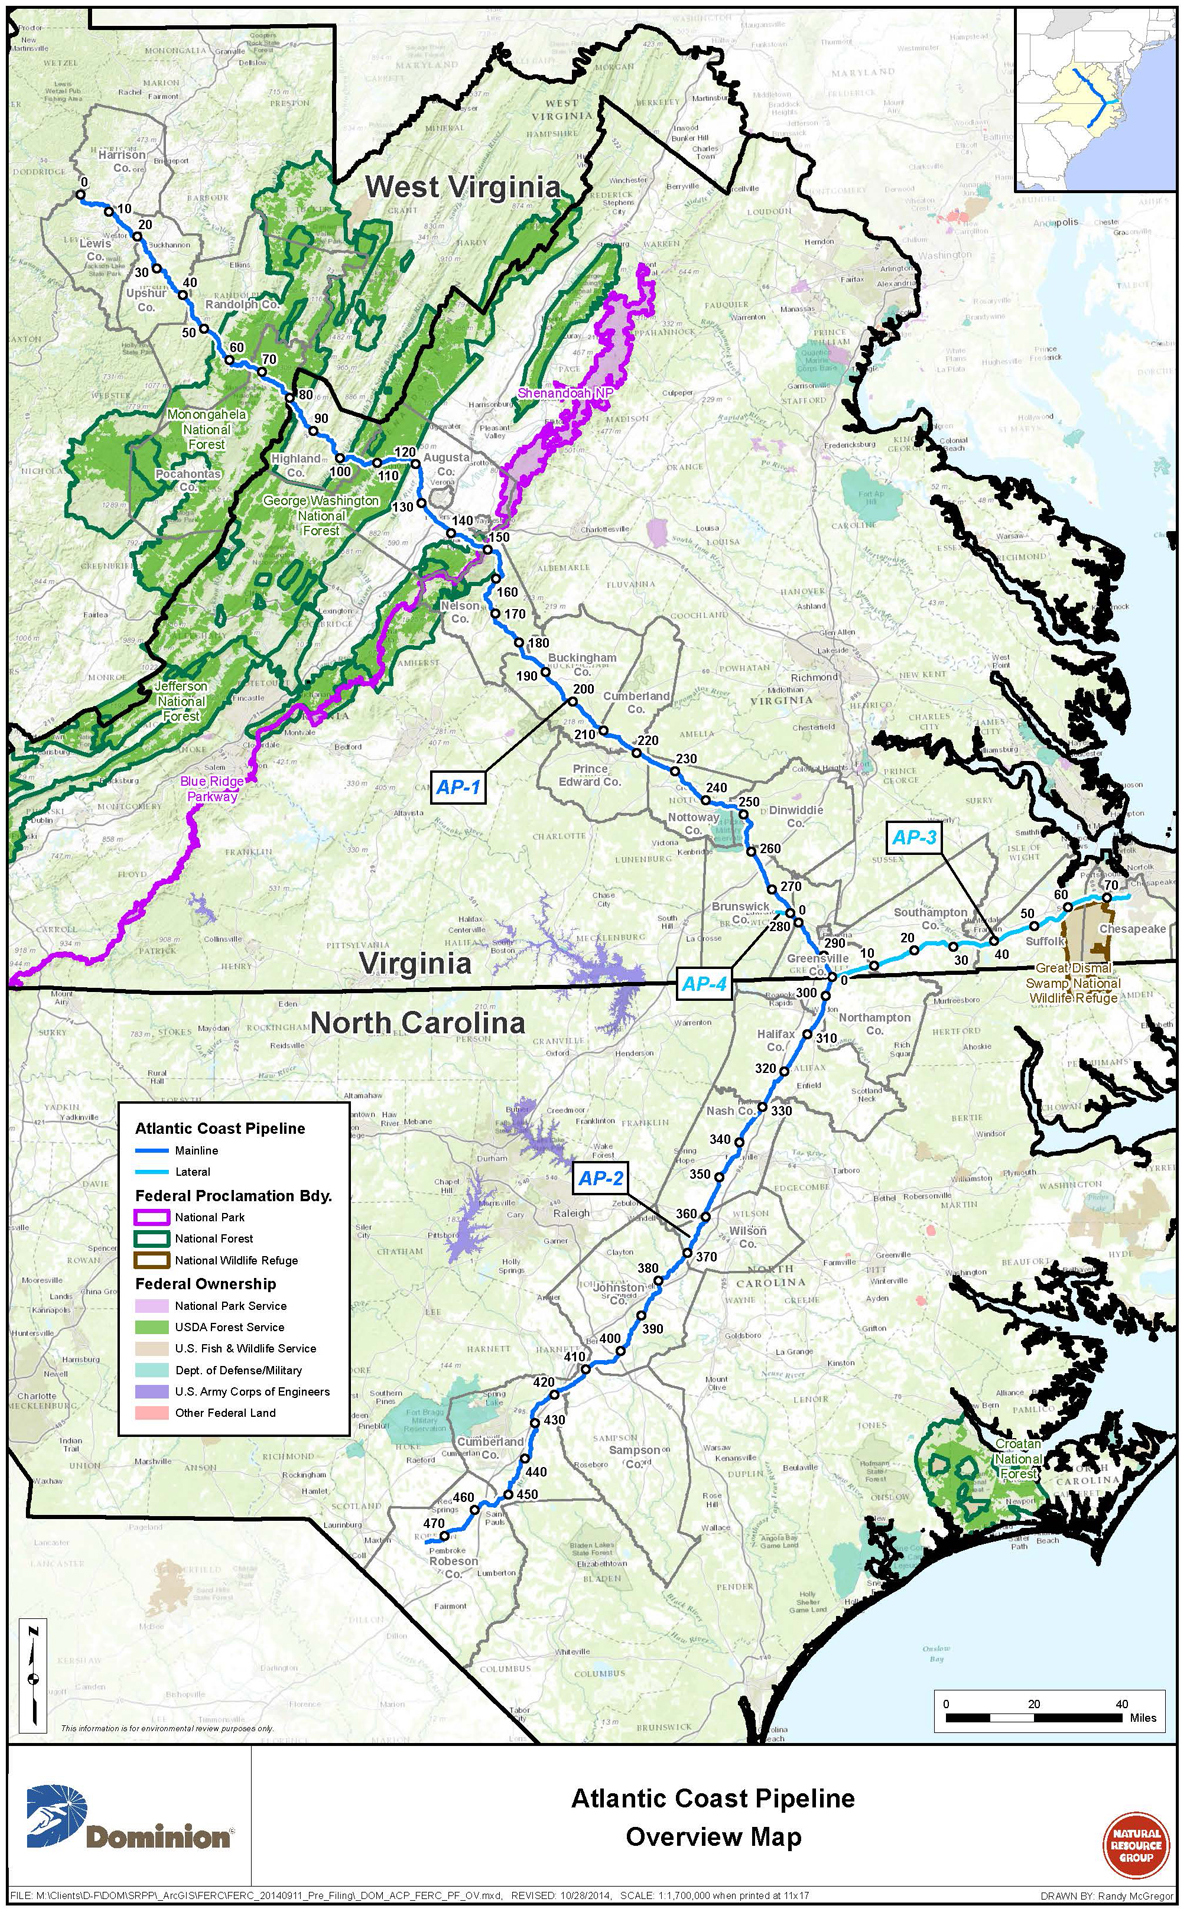 Atlantic Coast Pipeline Overview Map - Map Of Current Pipelines In The Us